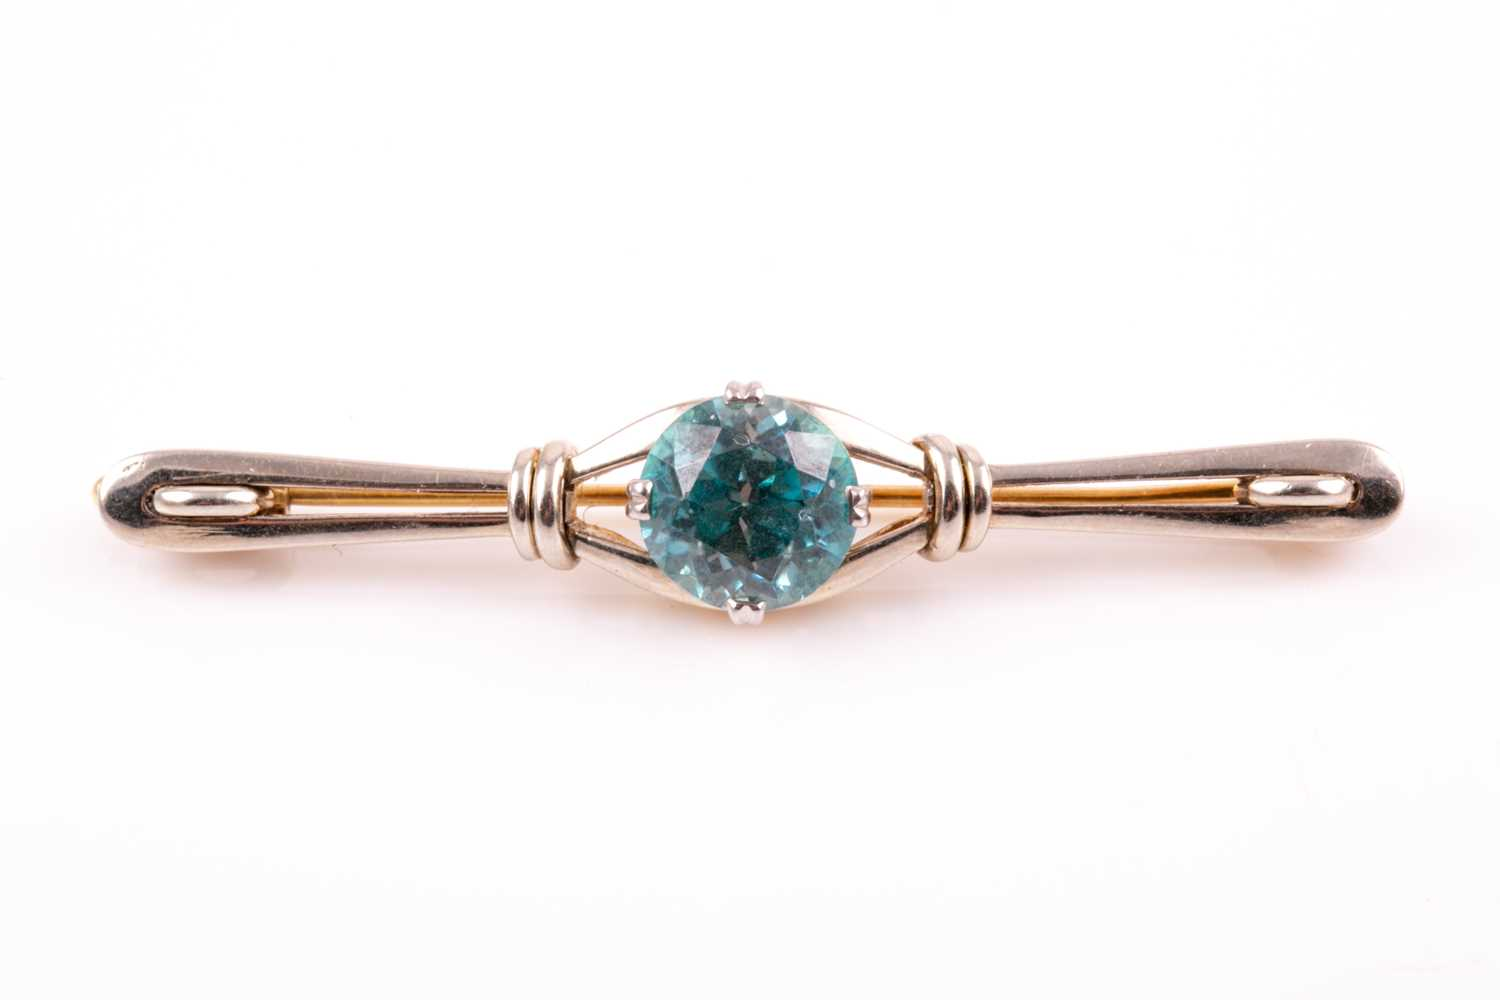 A white and yellow gold and blue zircon brooch, set with a mixed round-cut zircon measuring